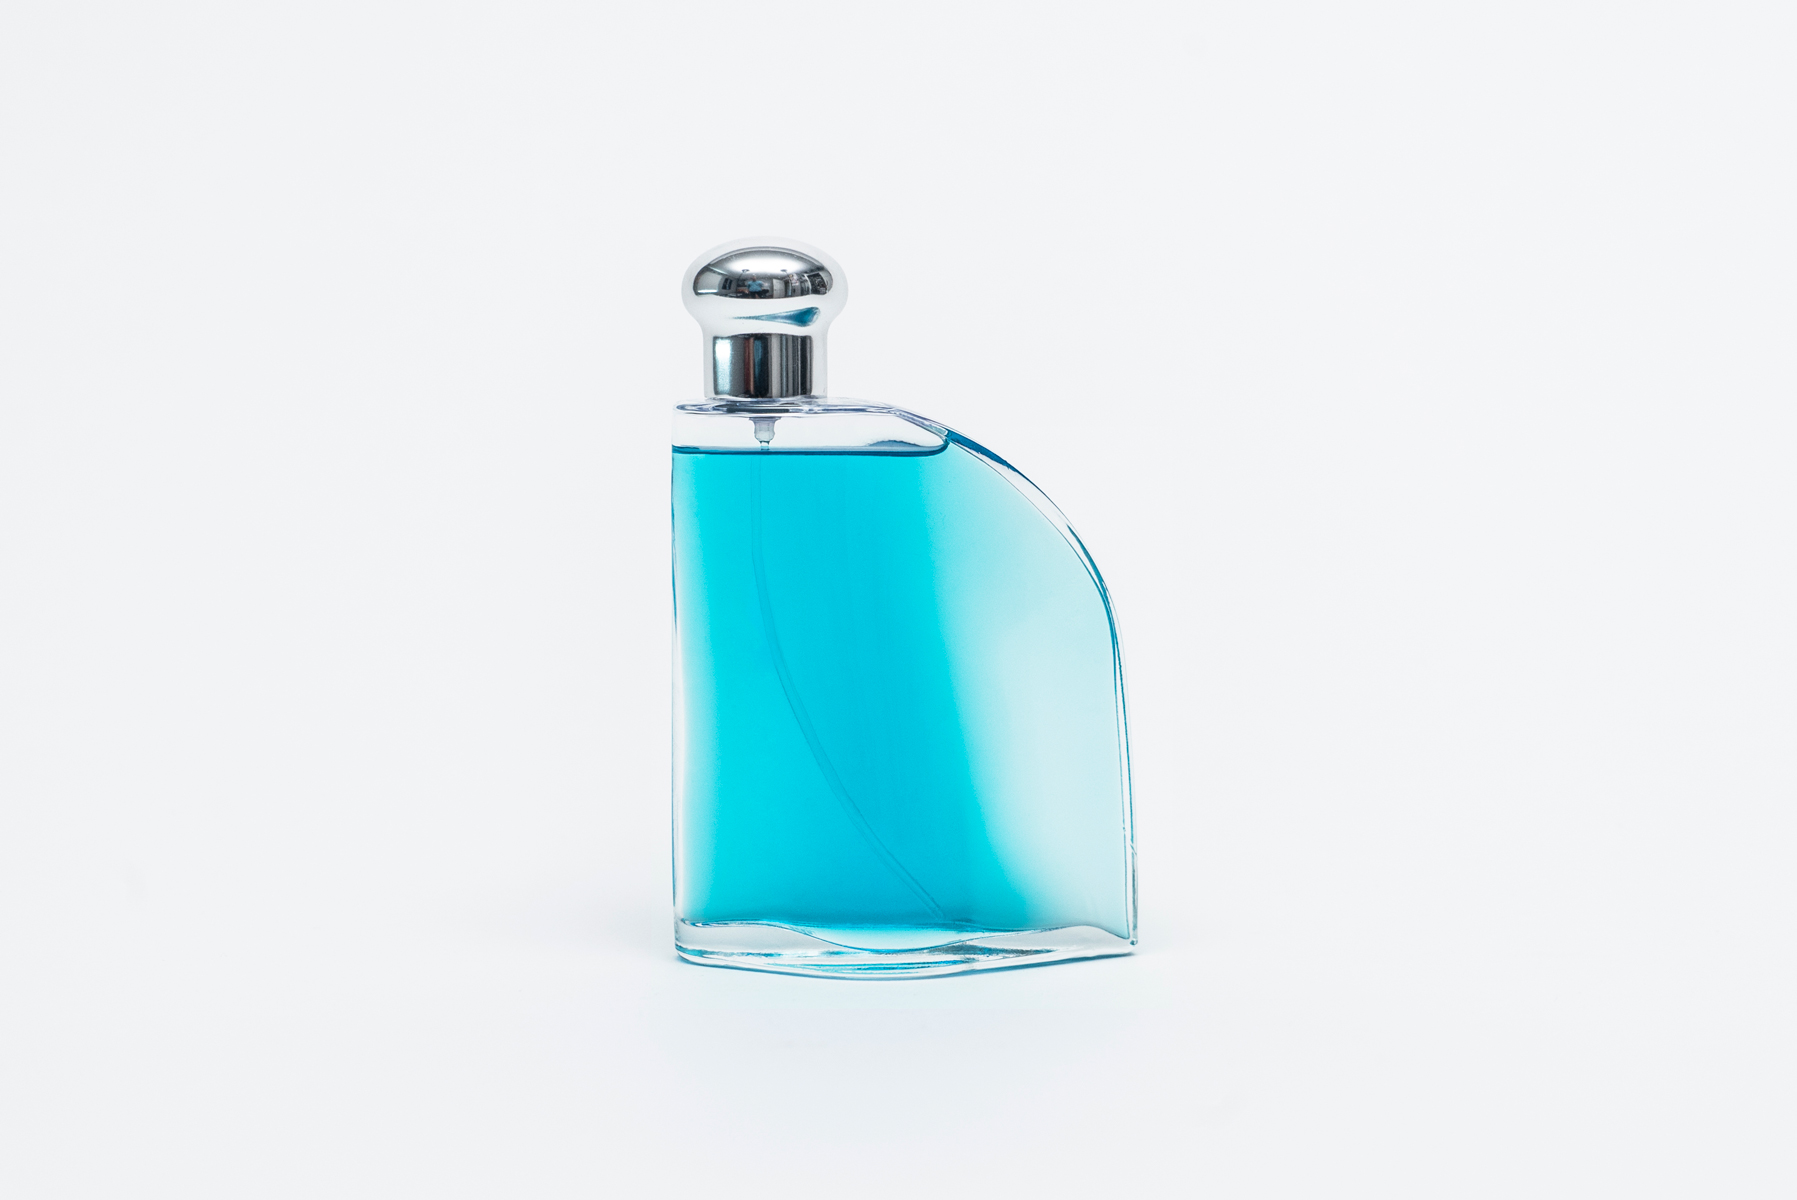 mens_cologne_liquid_teal_bath_mouth_wash_flouride_web.jpg